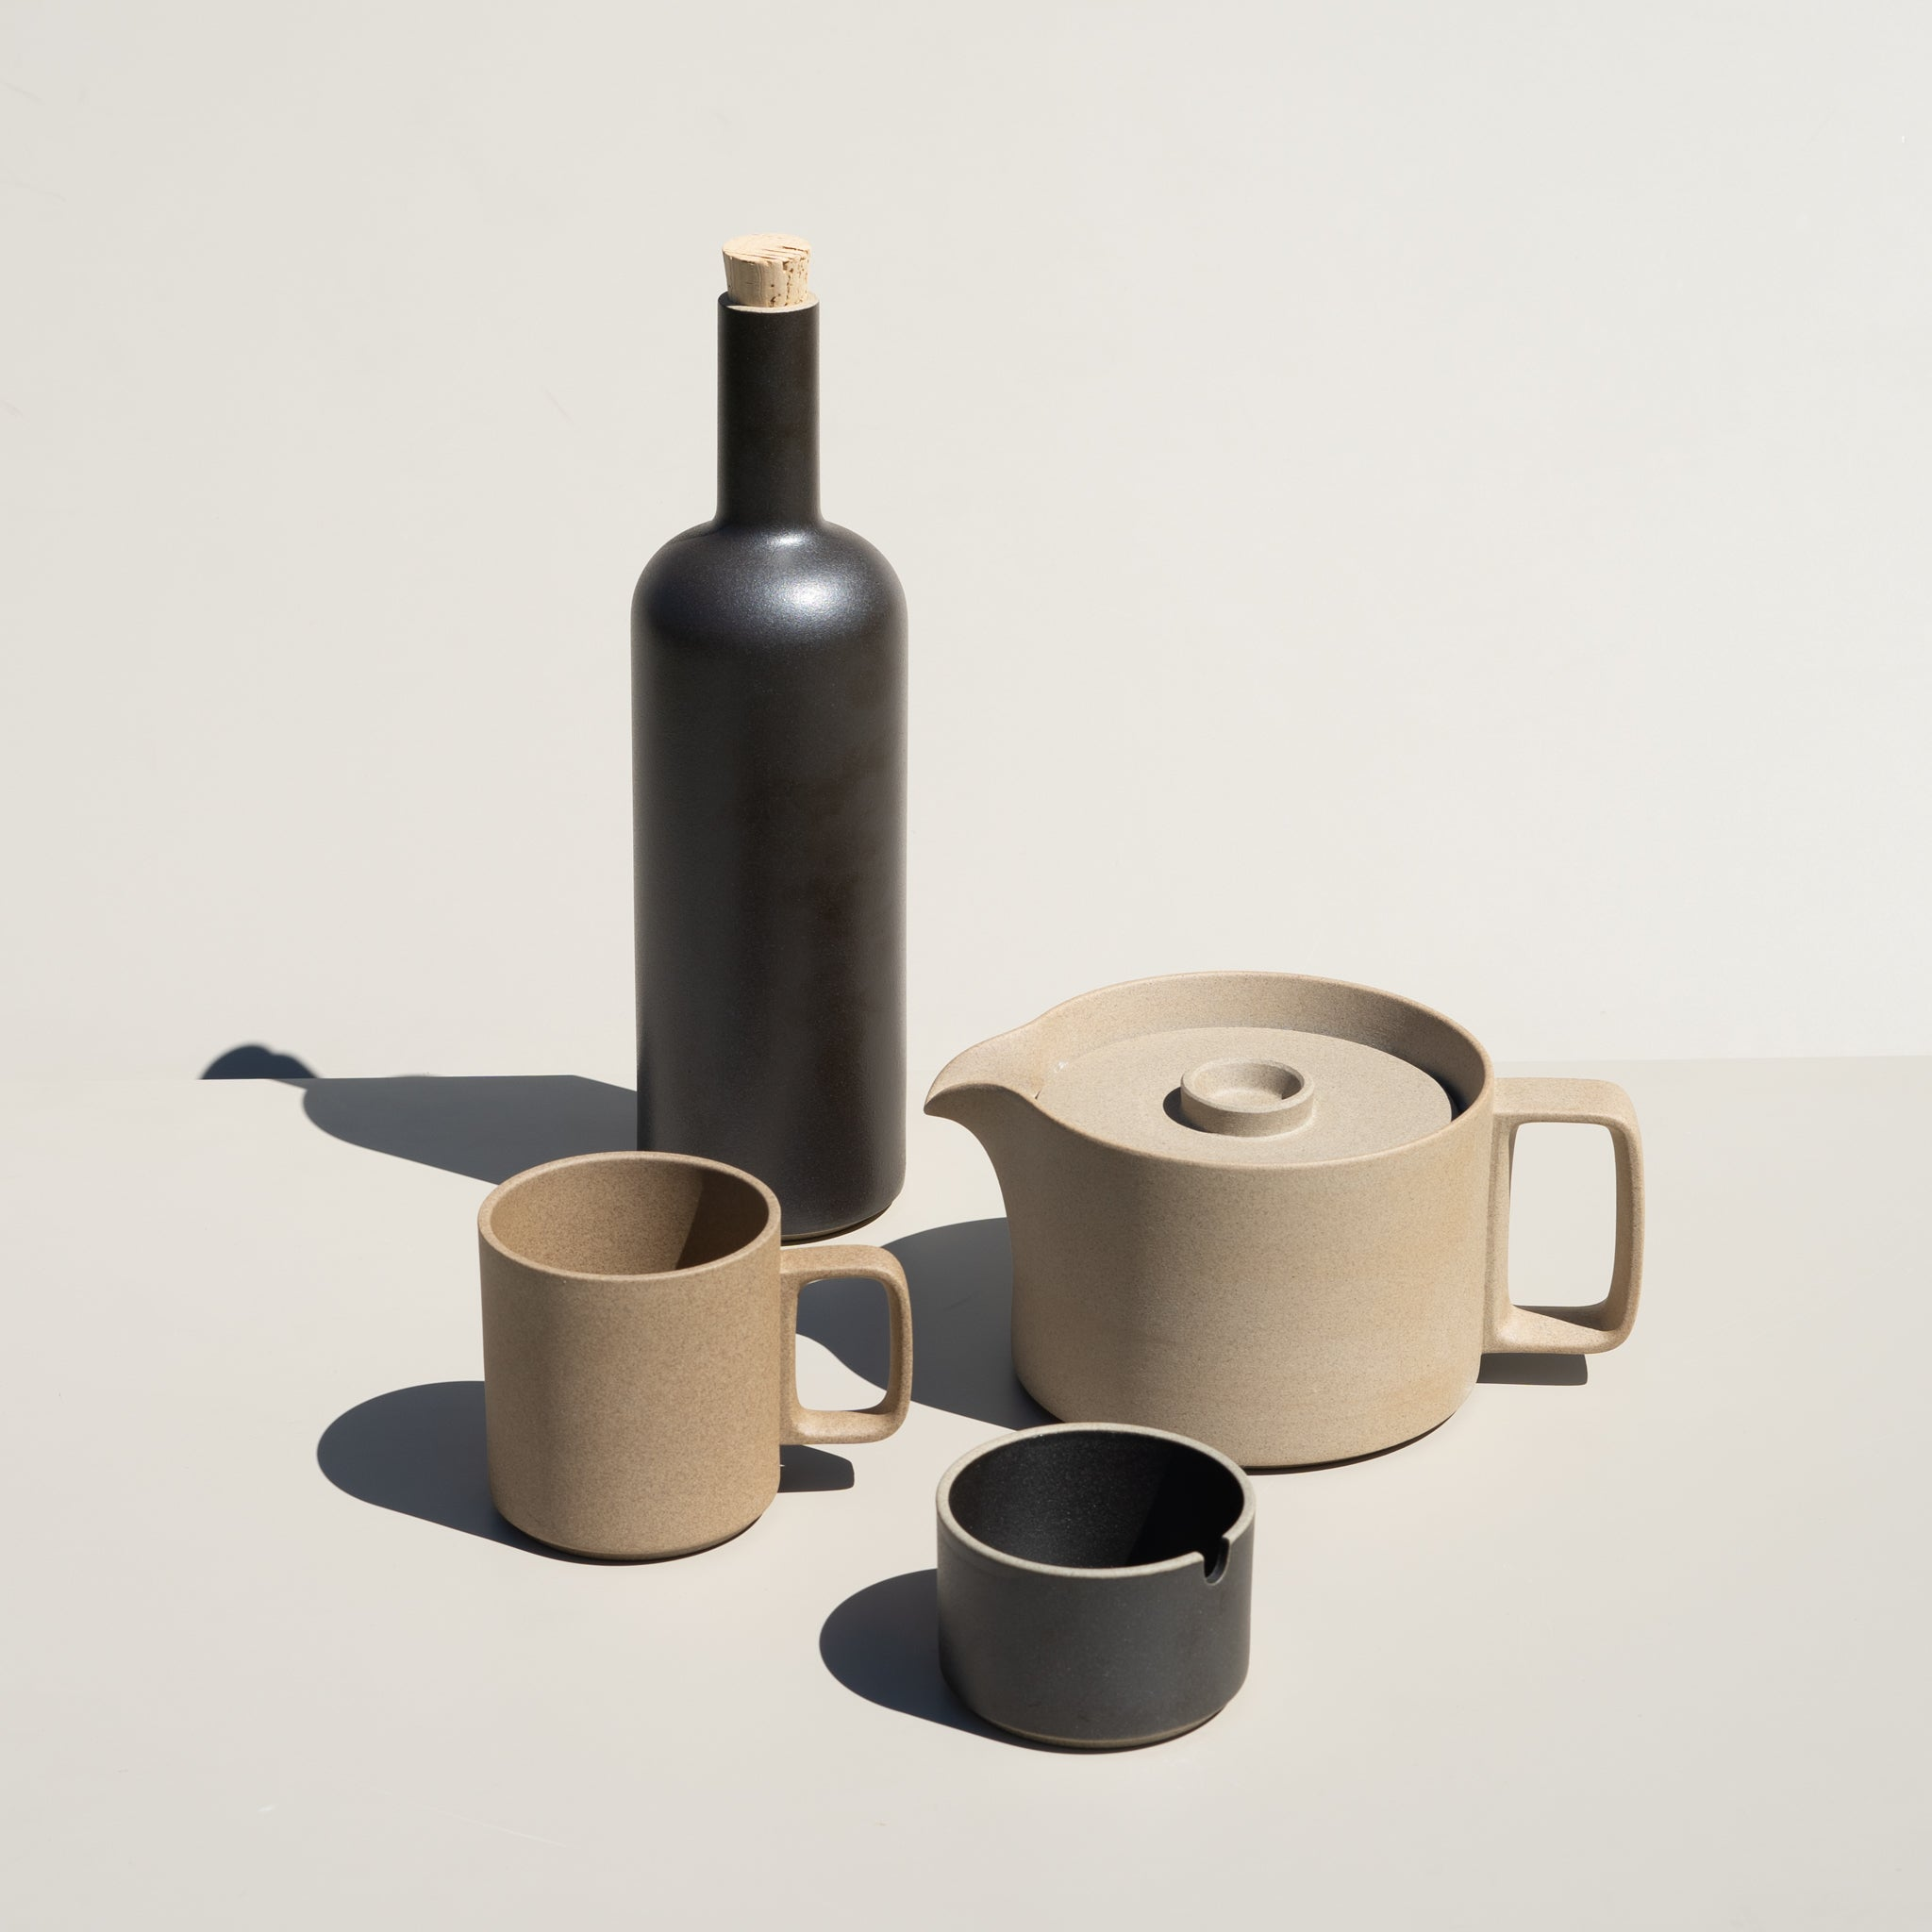 Hasami Porcelain ceramic wares made in Japan, featuring the Teapot in black finish.